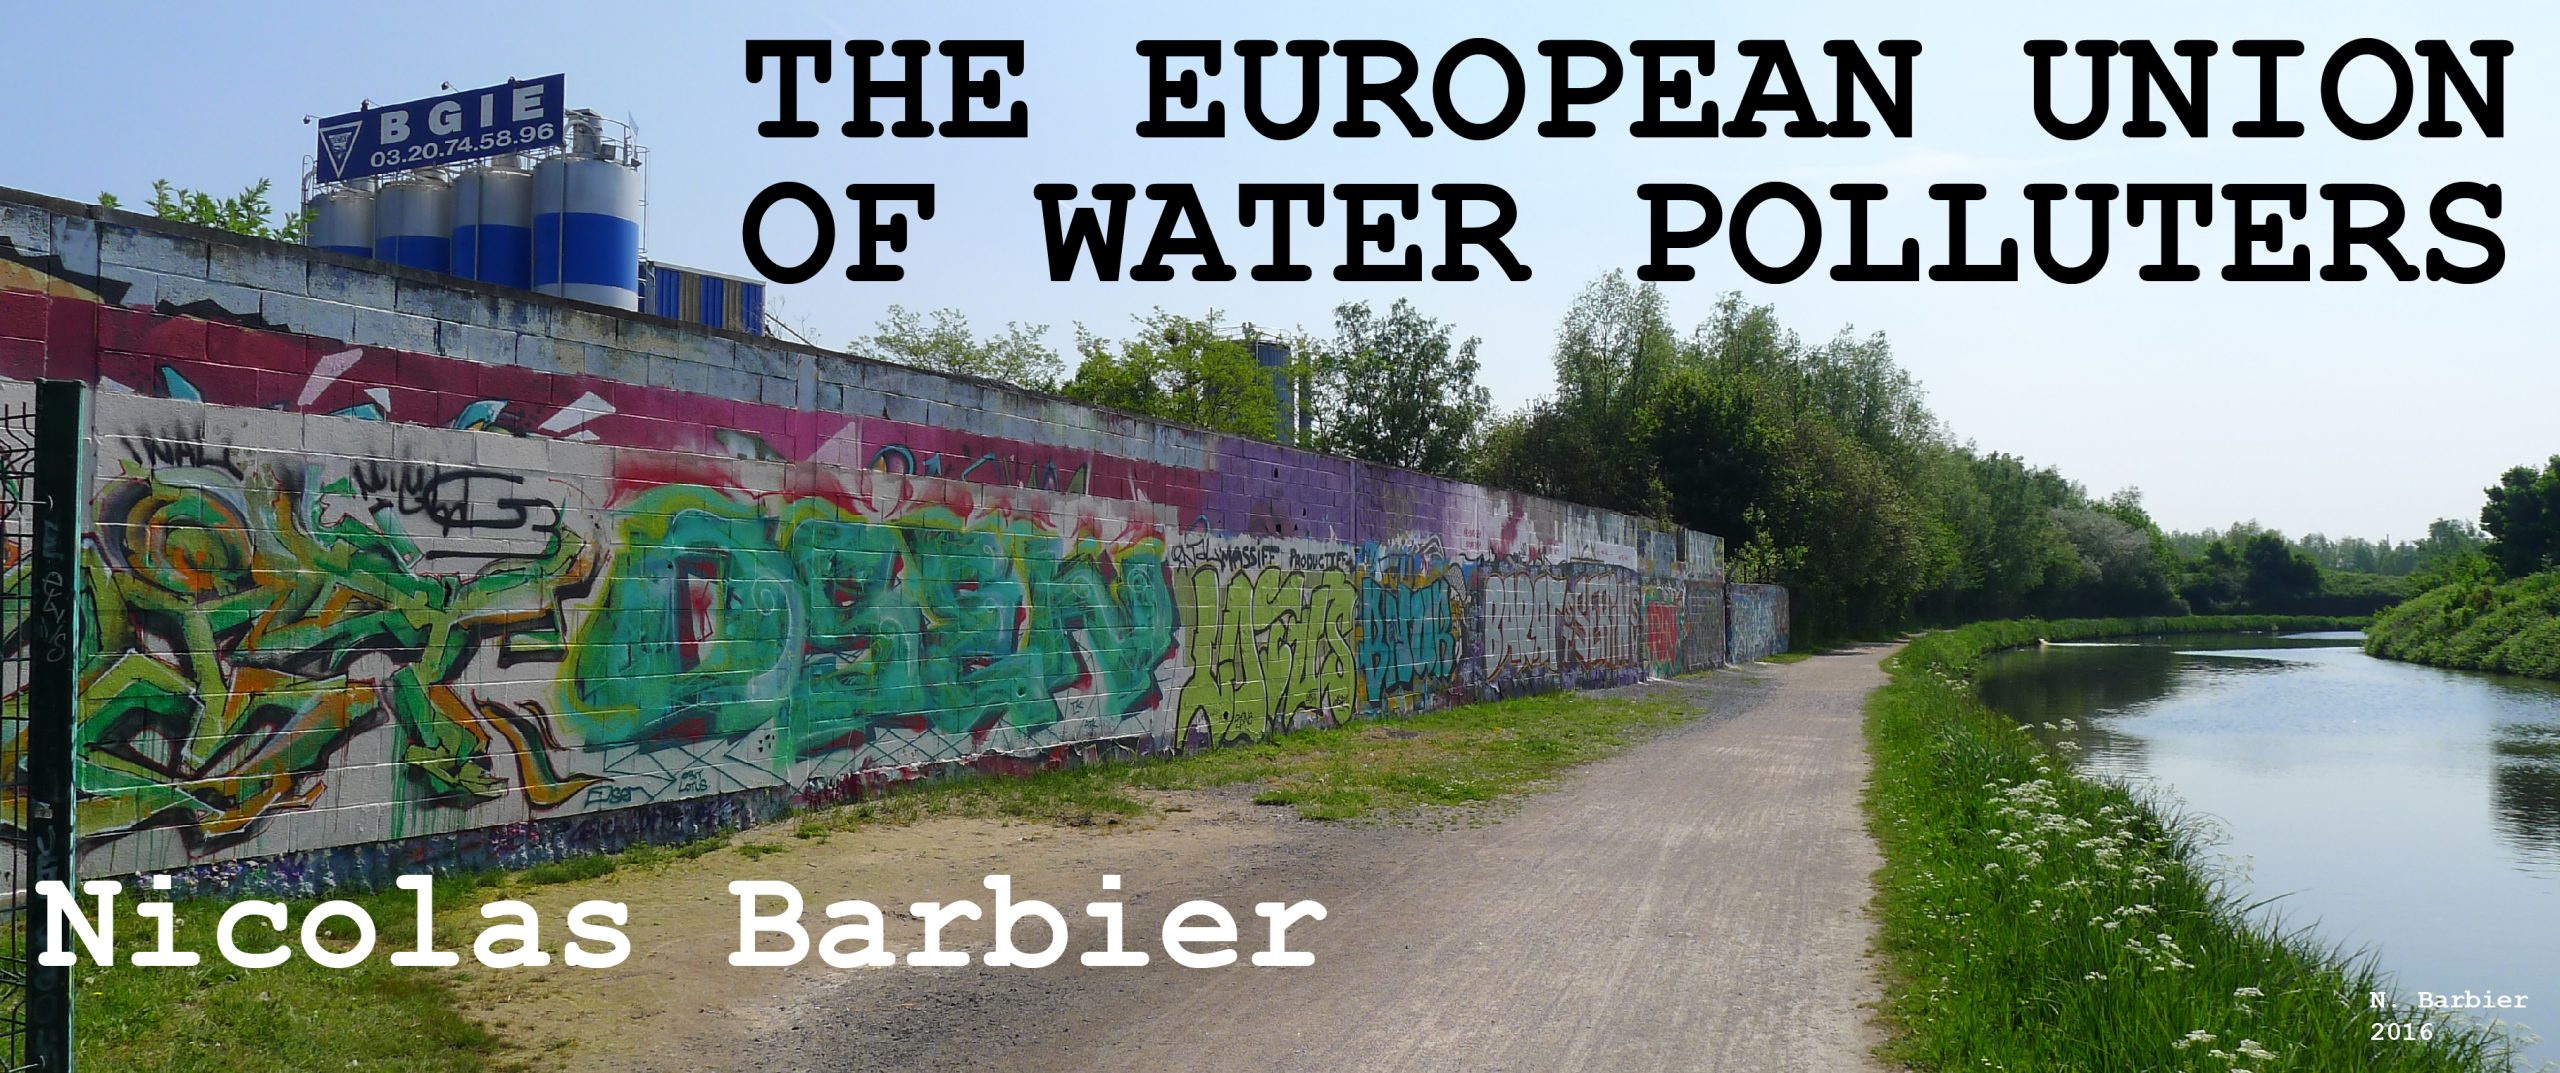 The European union of water polluters (11/2017)